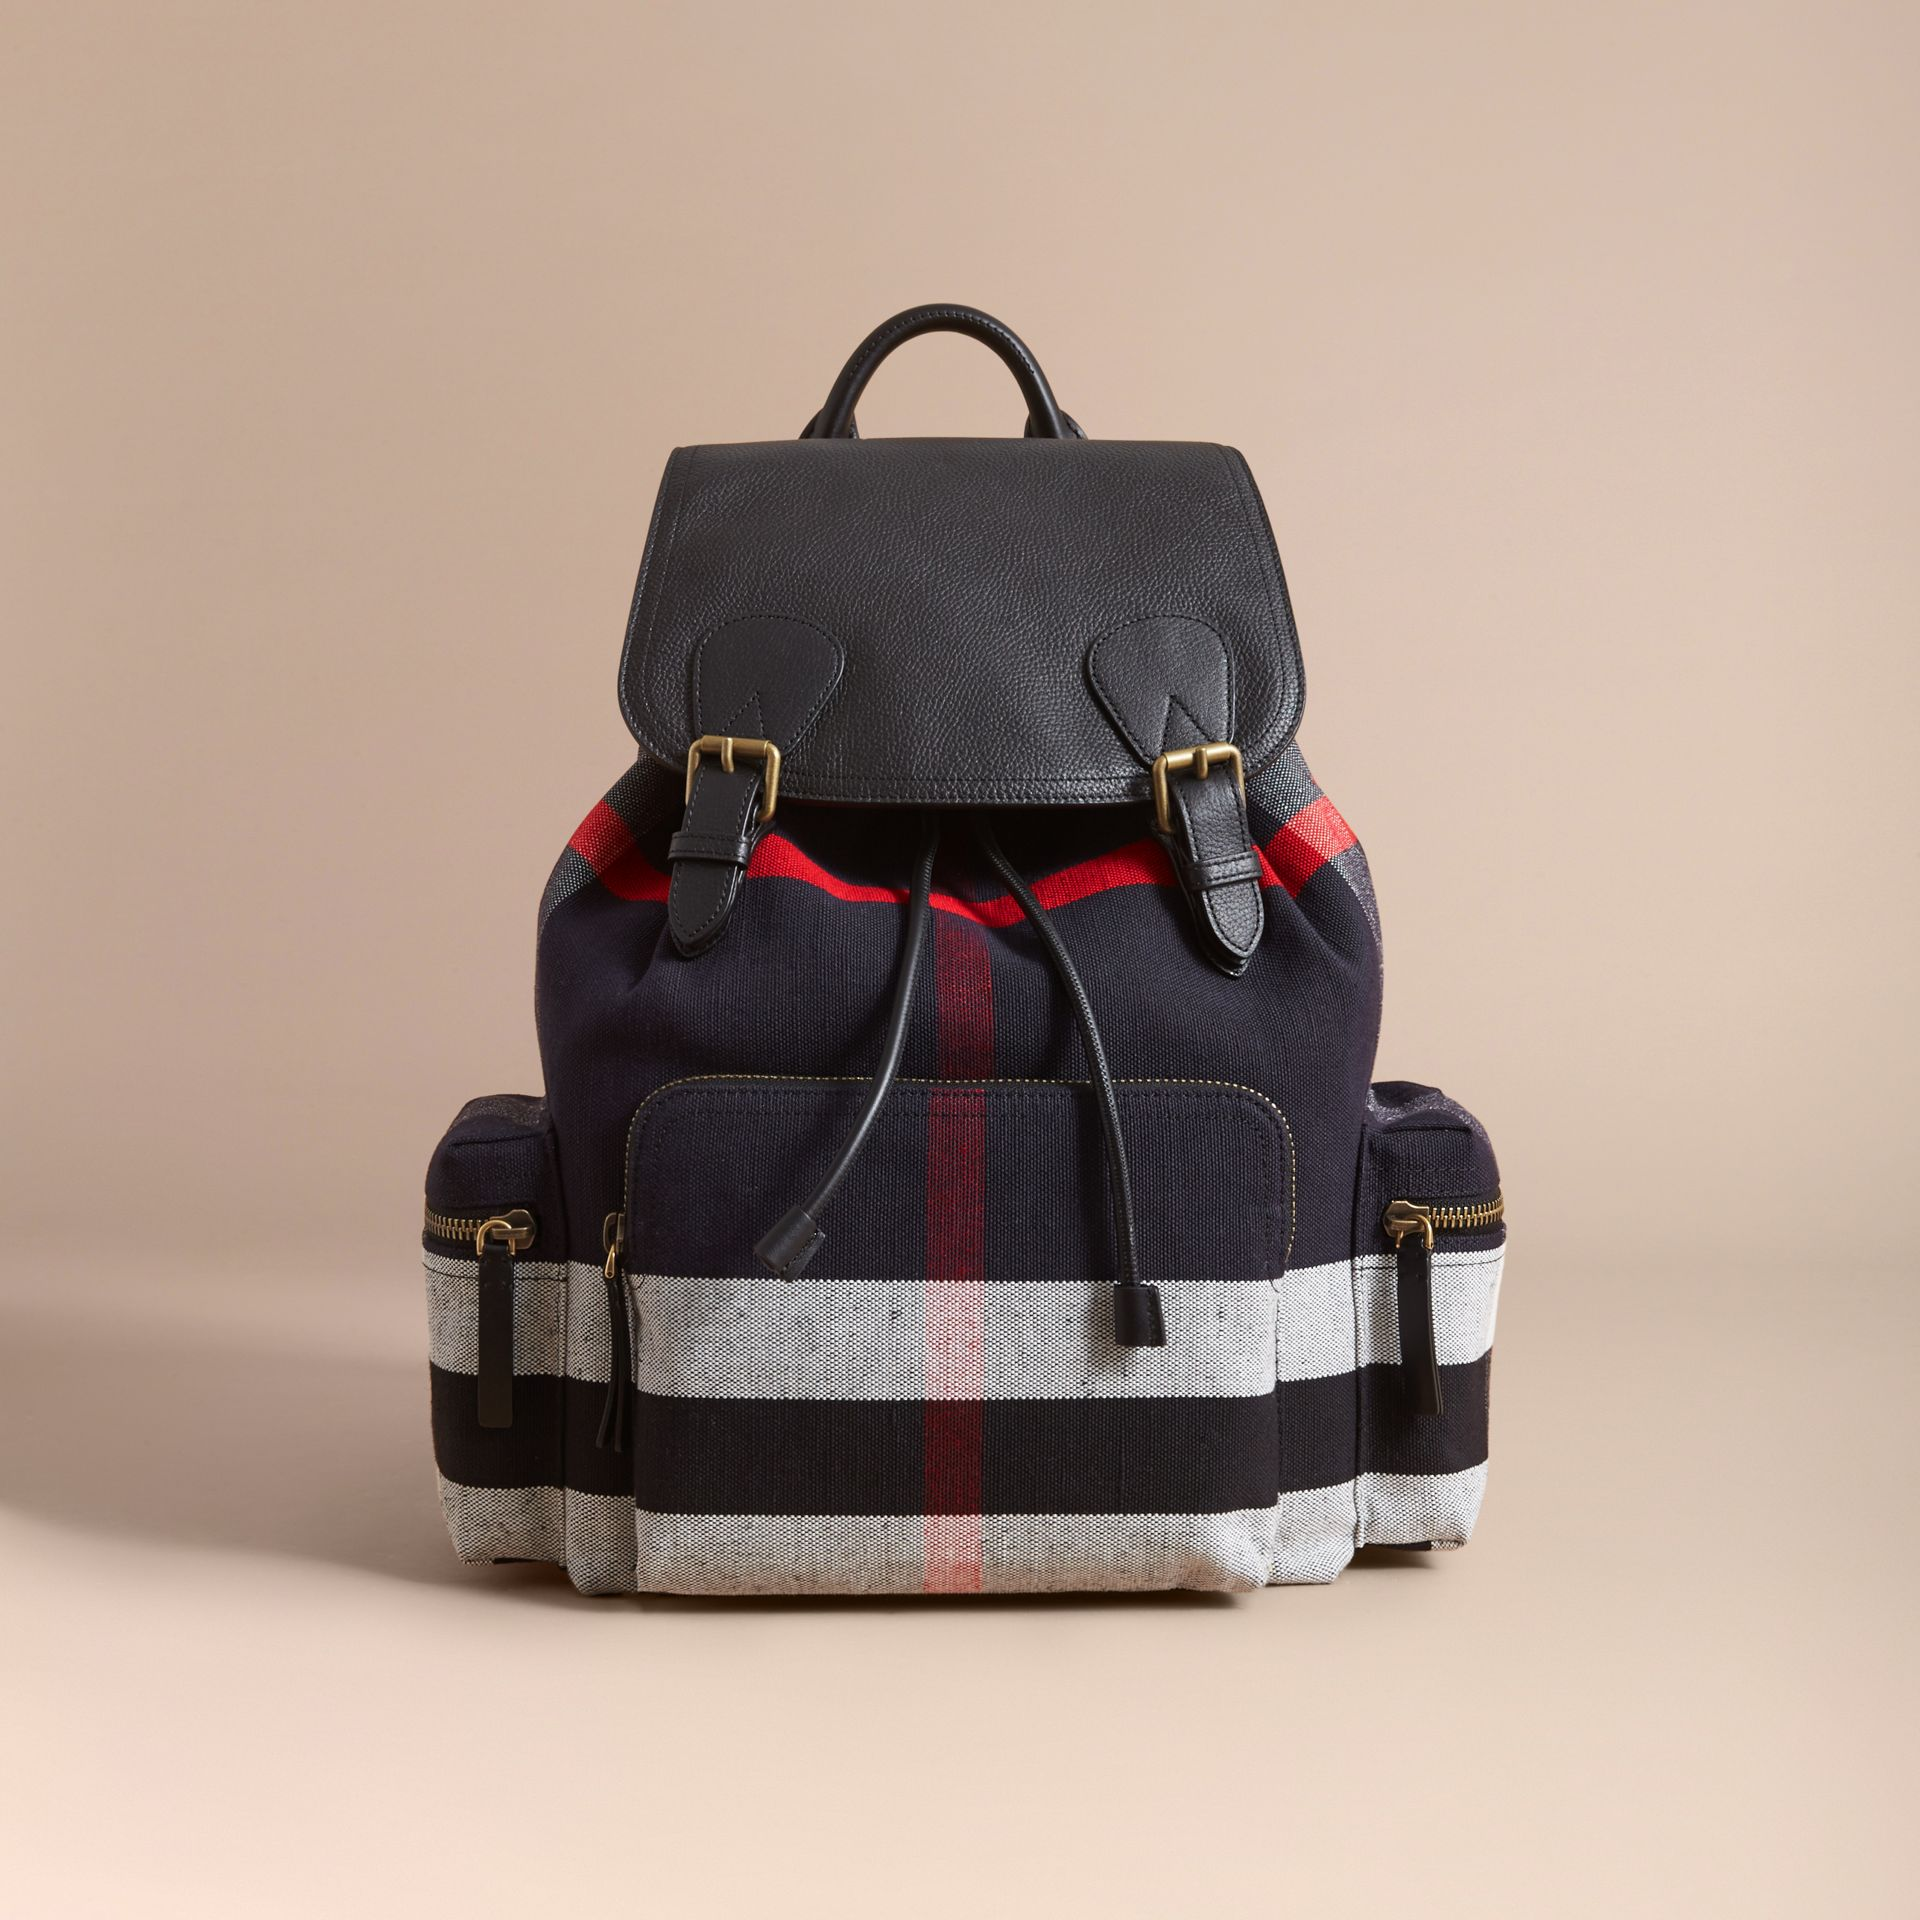 Grand sac The Rucksack en toile Canvas check et cuir (Noir) - Homme | Burberry - photo de la galerie 1